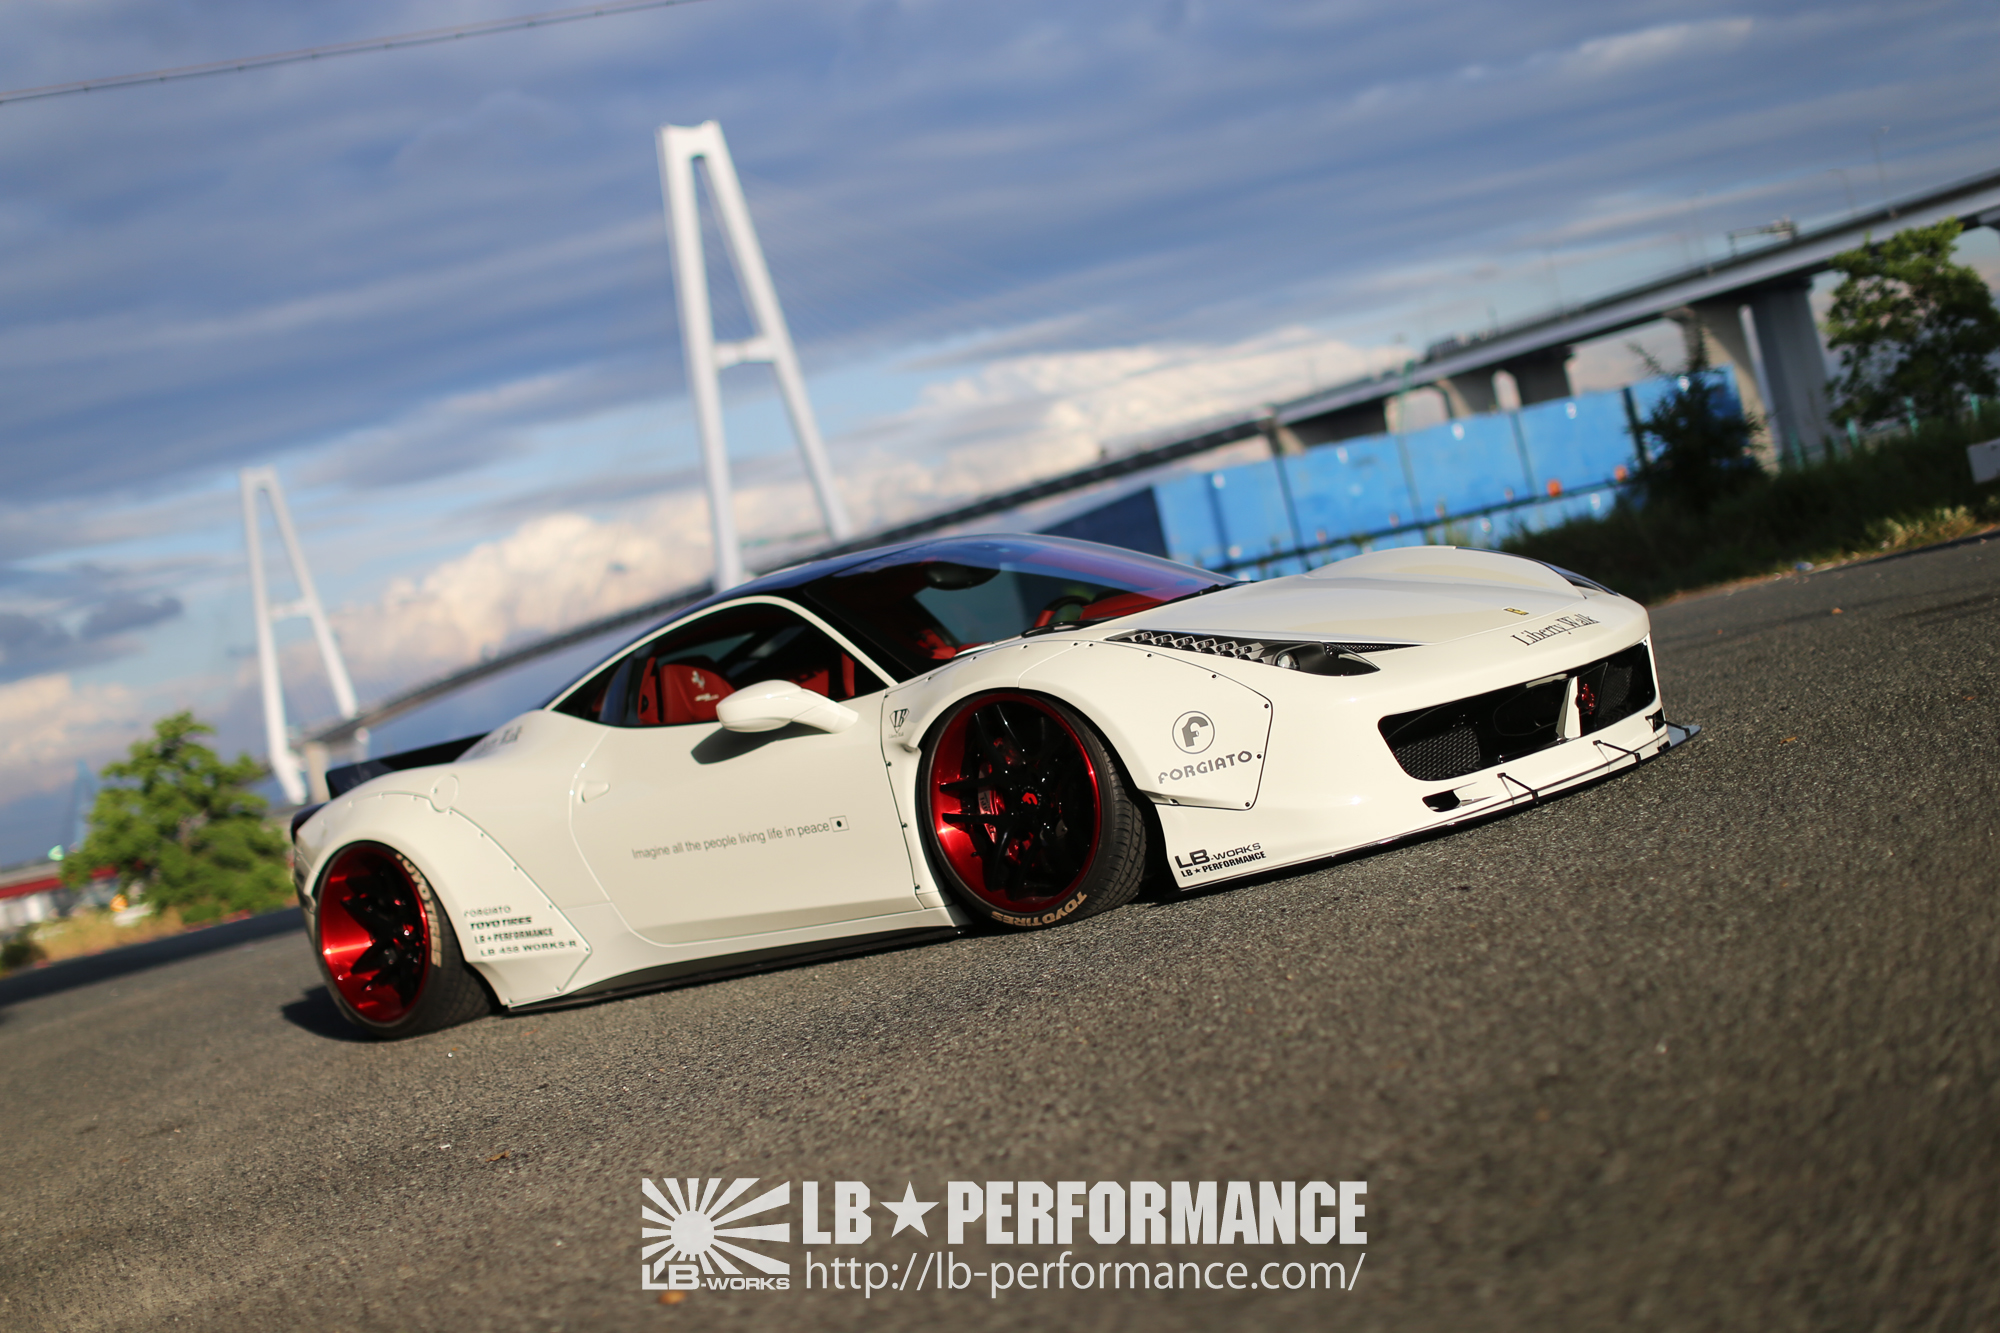 IMG_0963-1 LB-WORKS 458